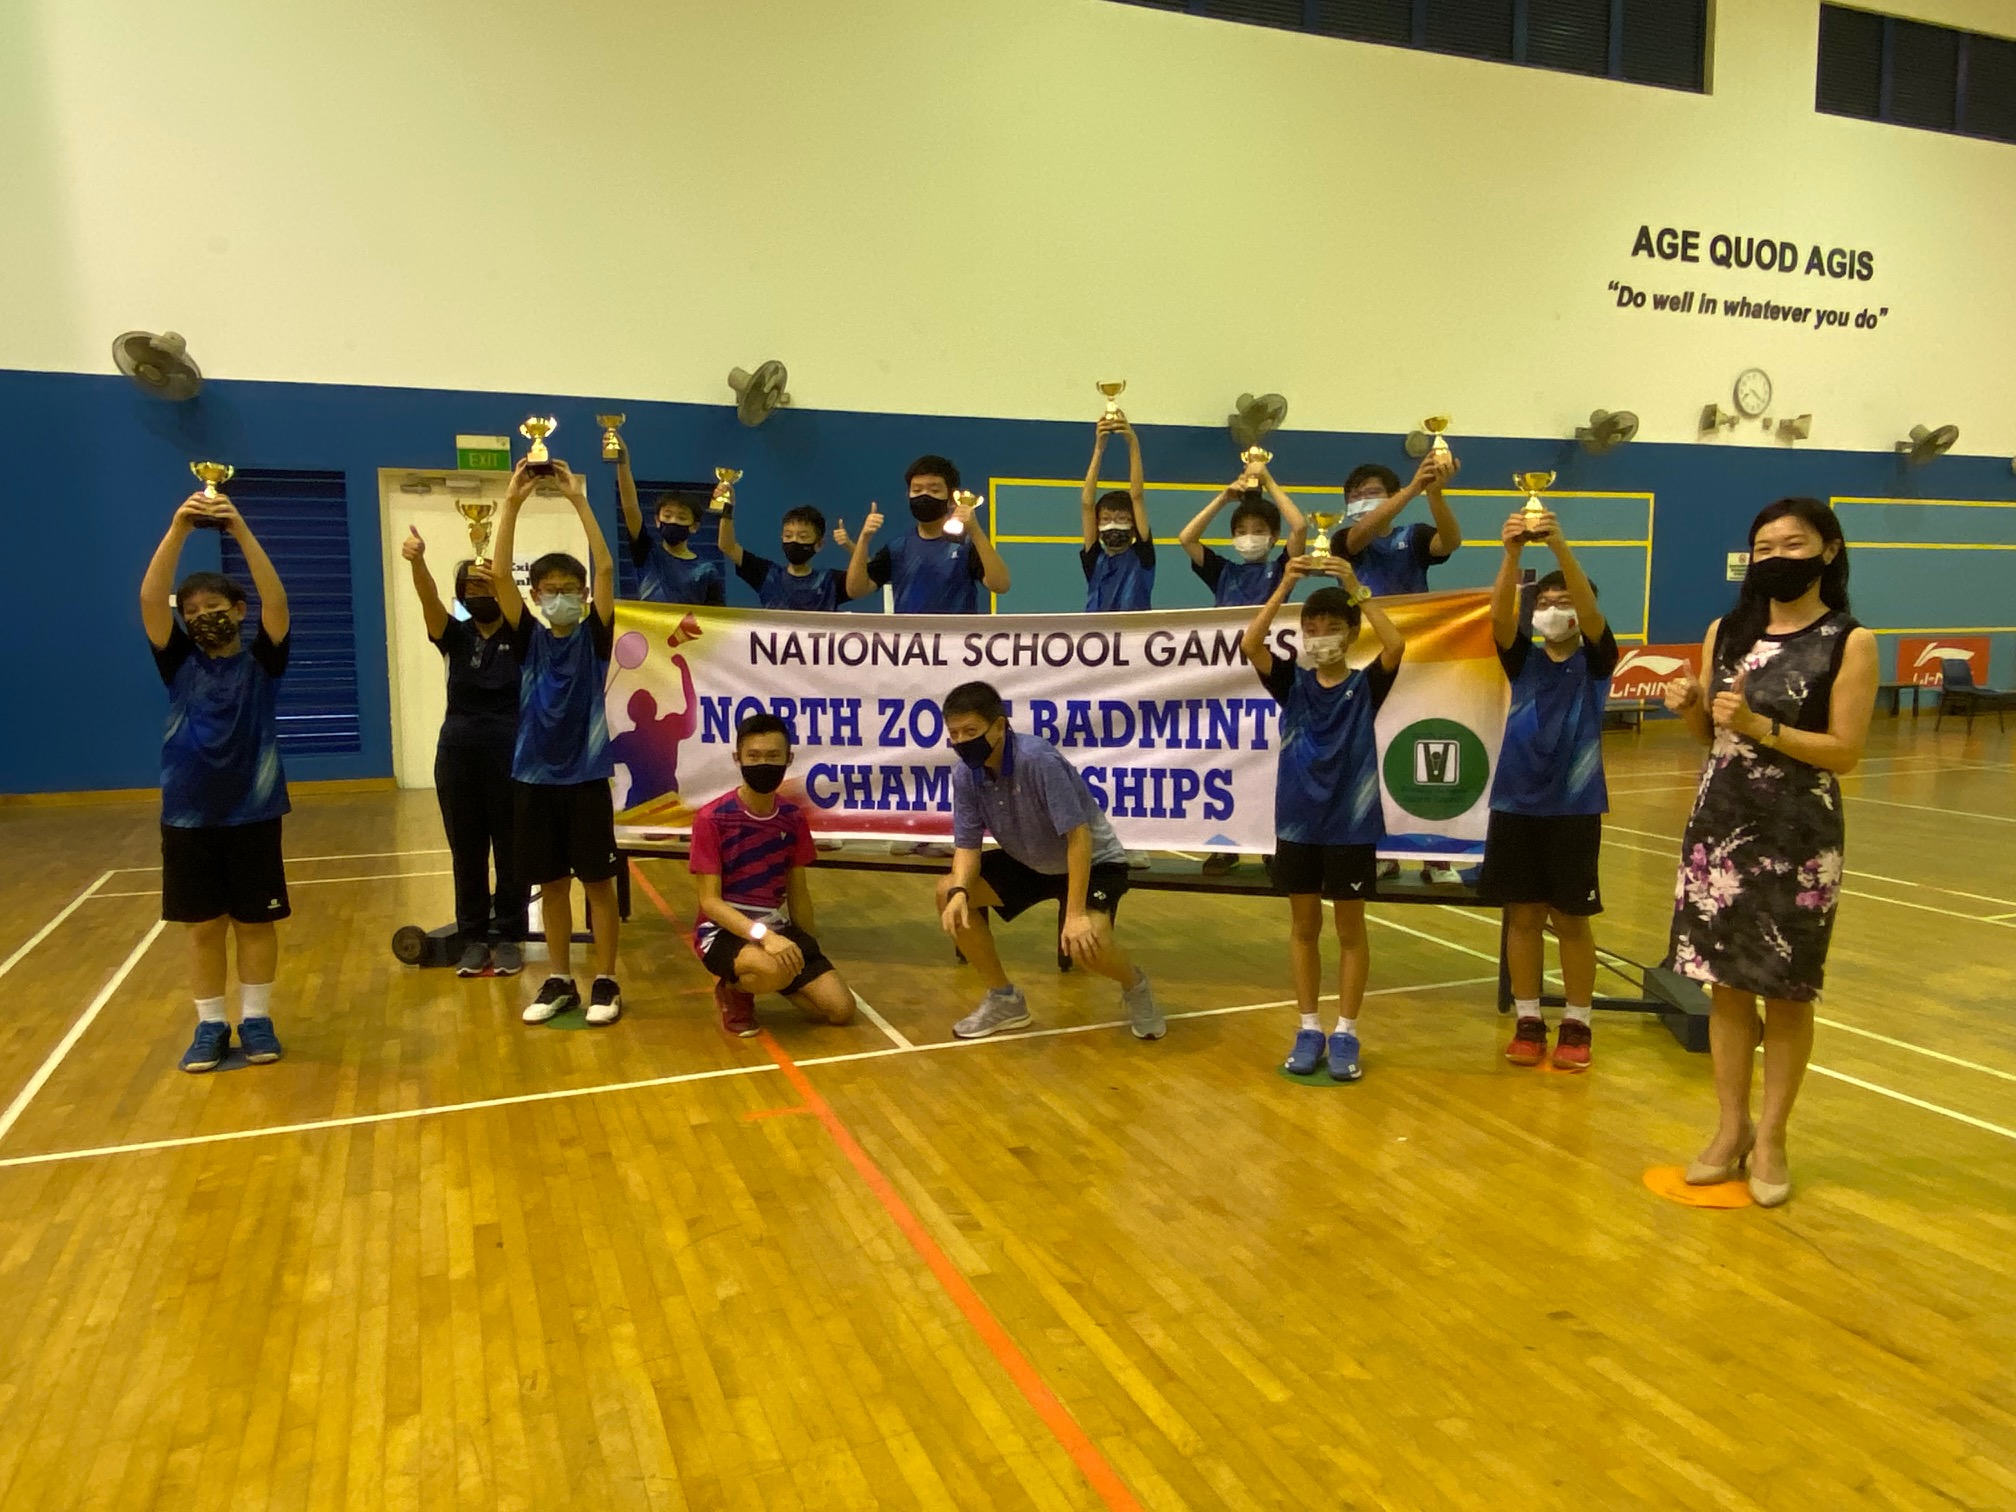 NSG Badminton : Rosyth School wins back-to-back Boys' championship title!